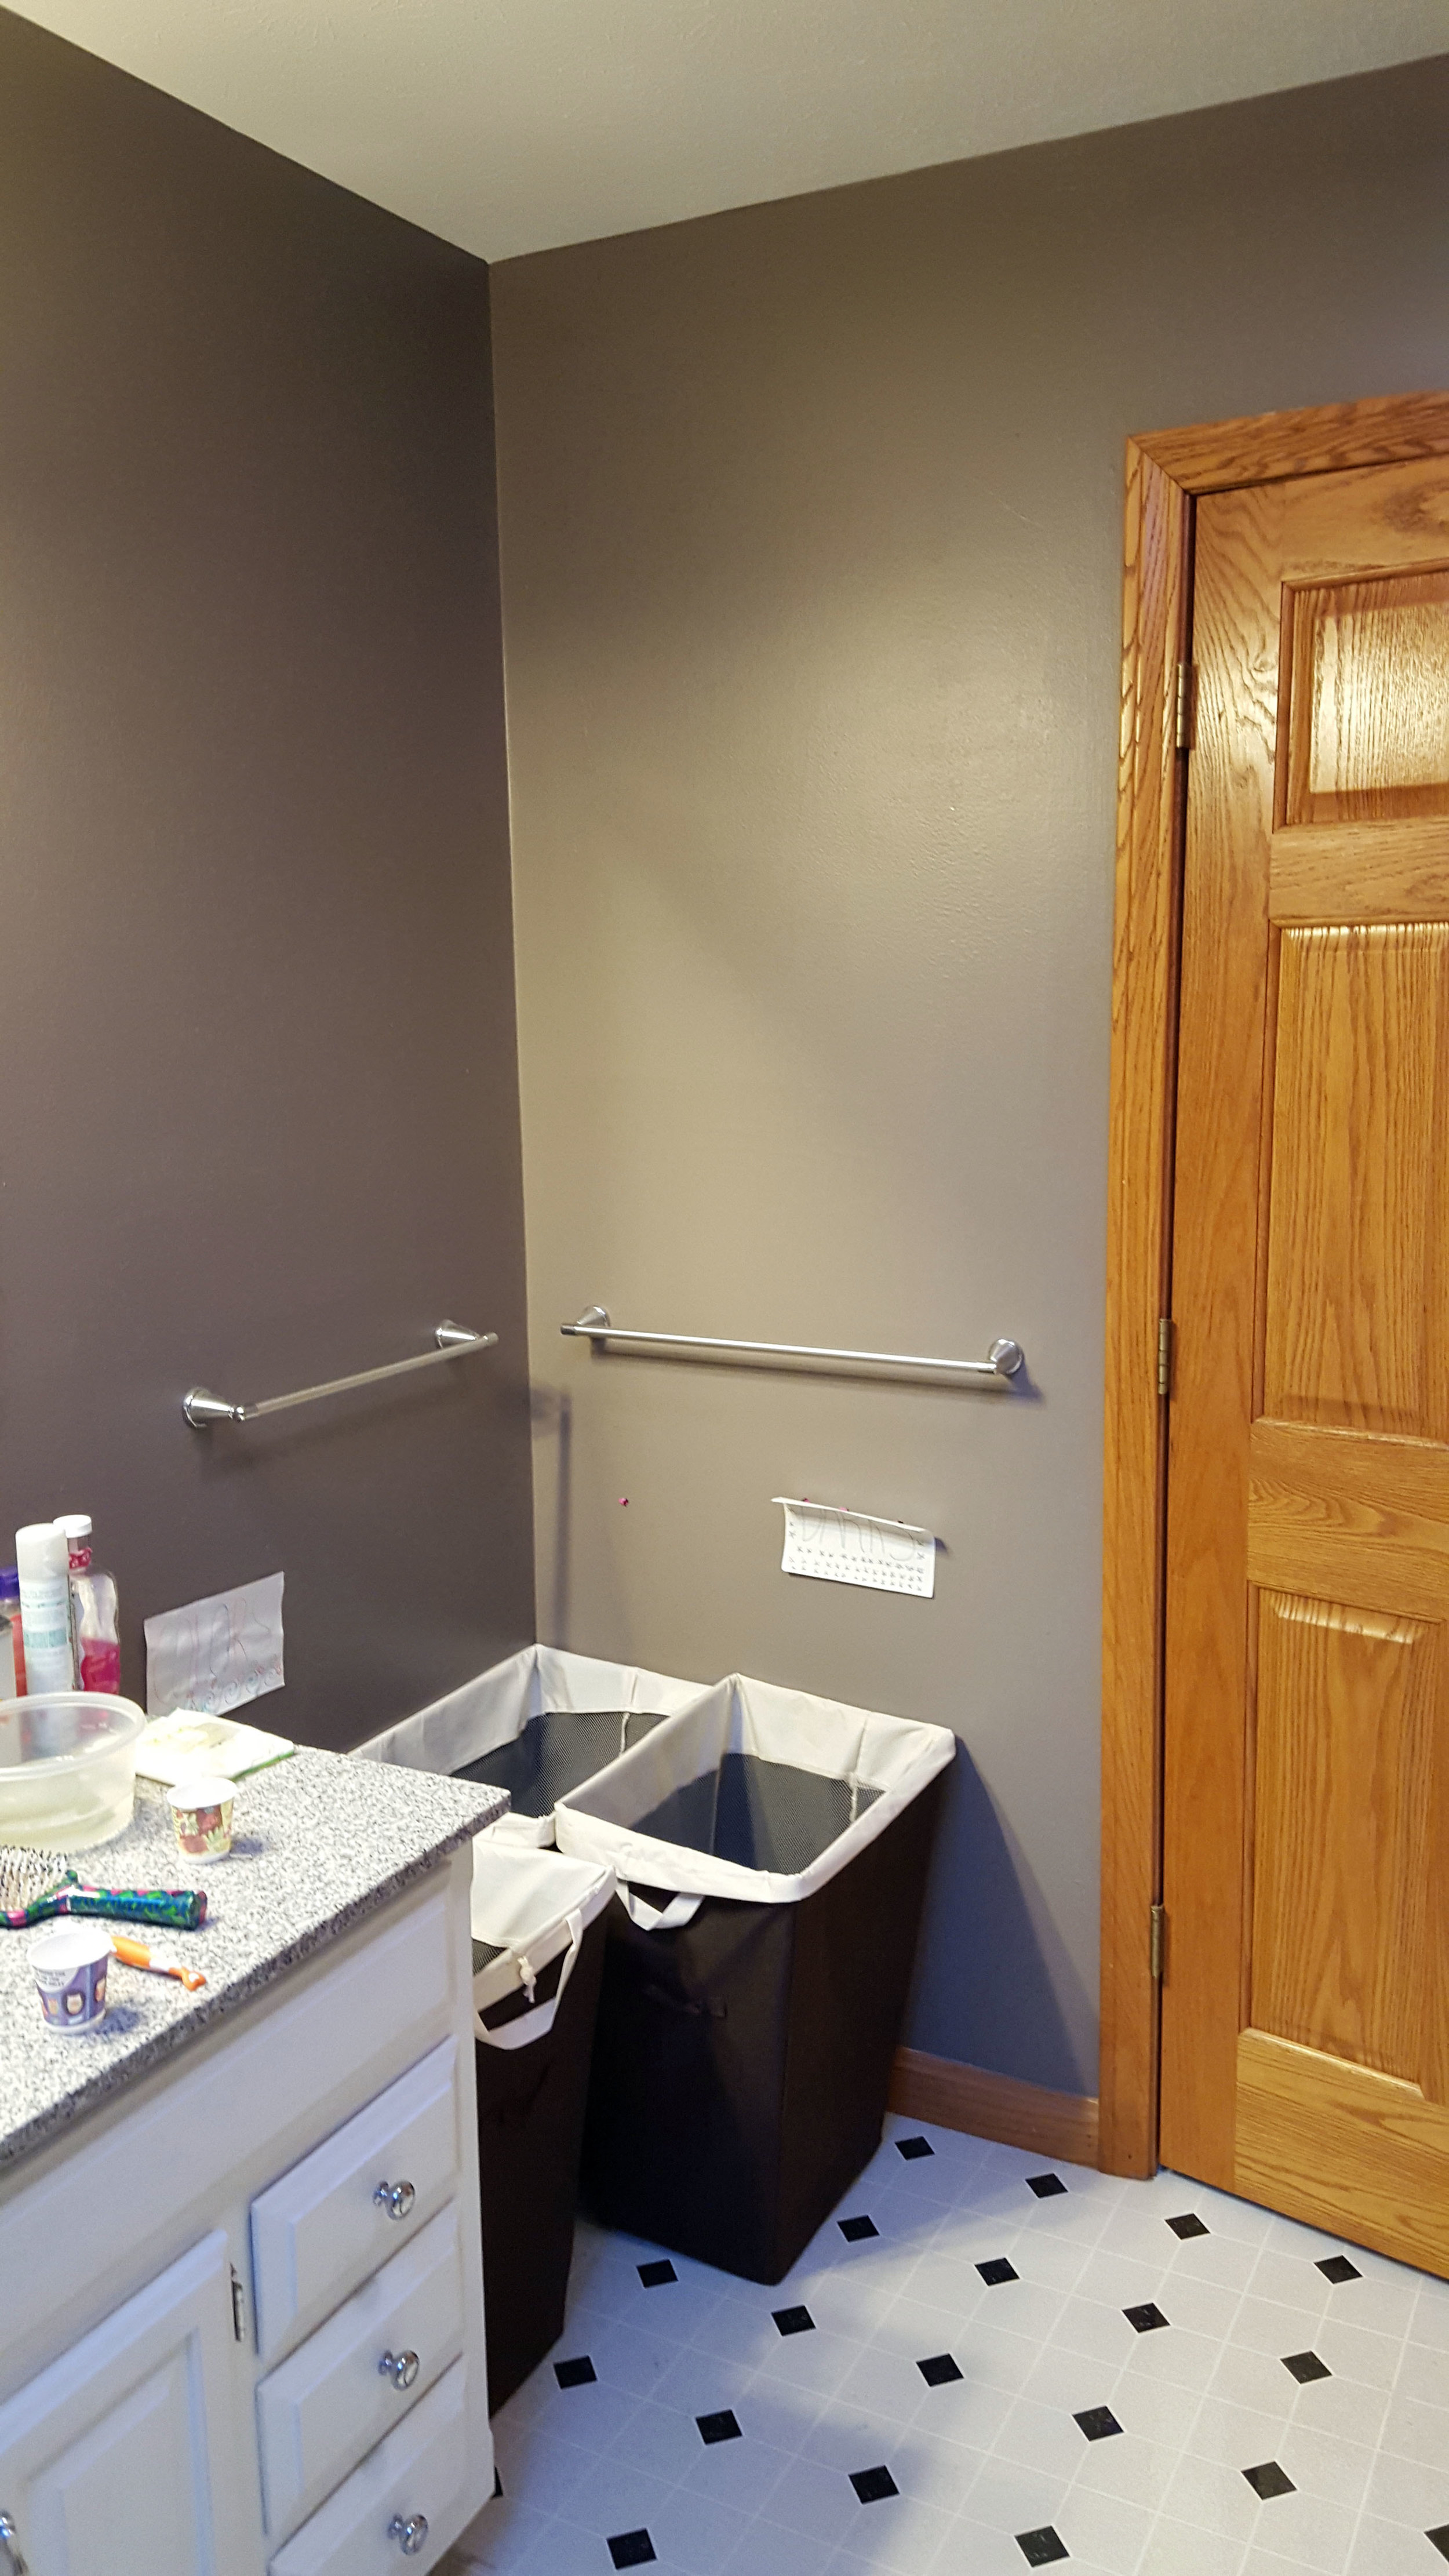 Before - underused space behind bathroom door